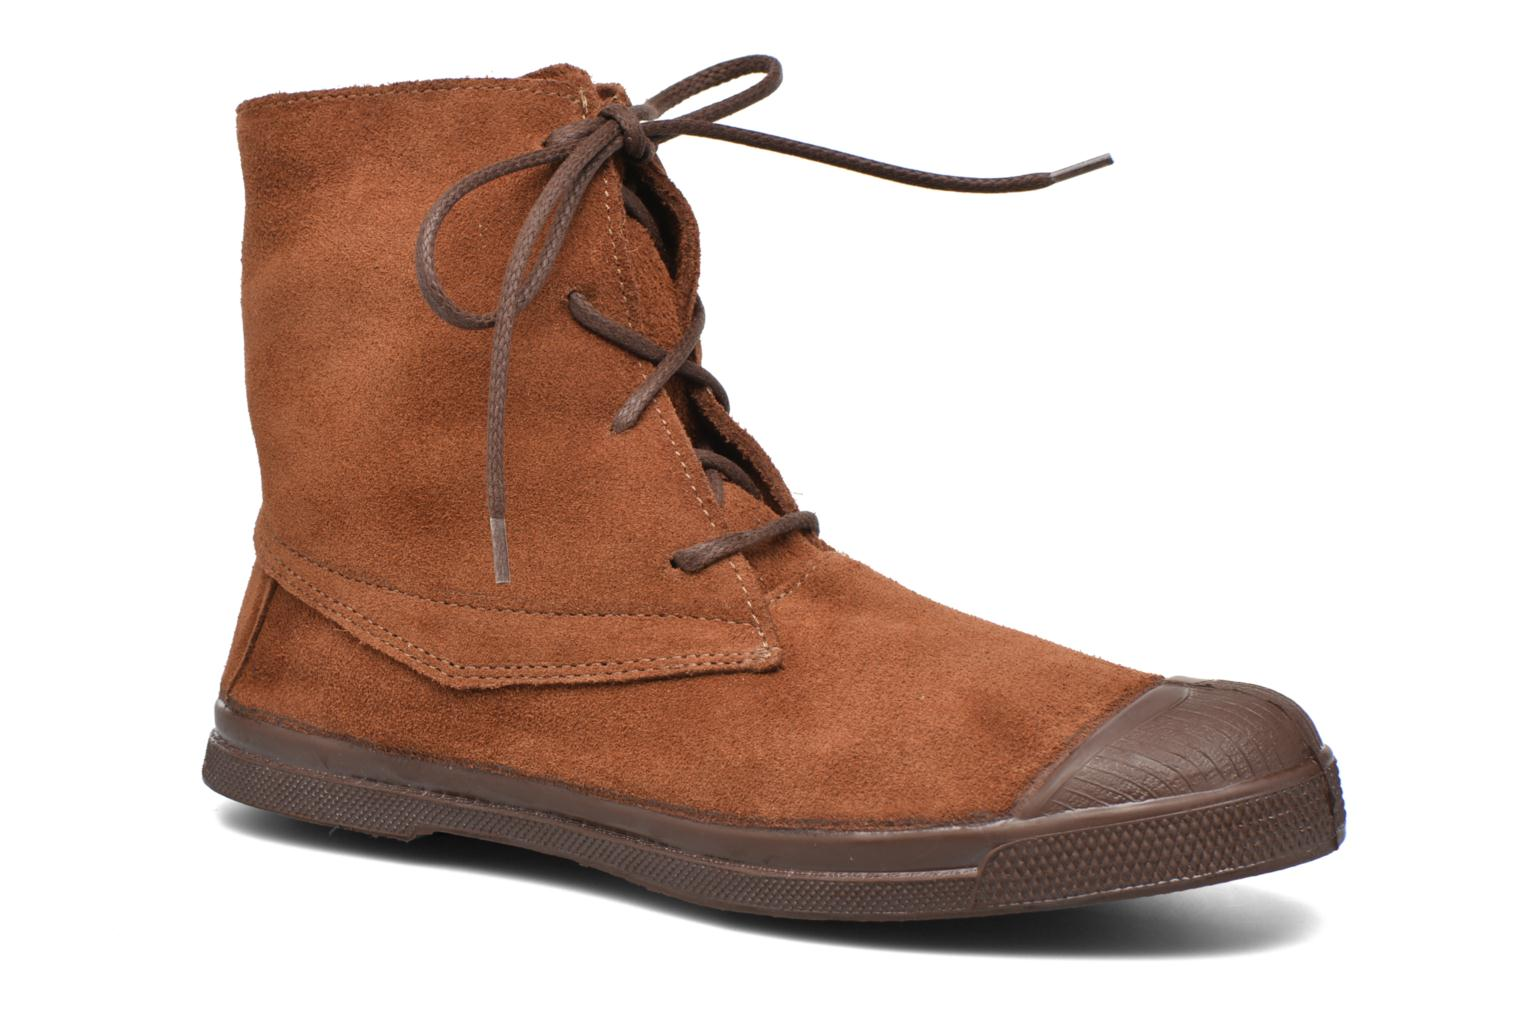 Baskets Bensimon Boots Dakota Marron vue détail/paire